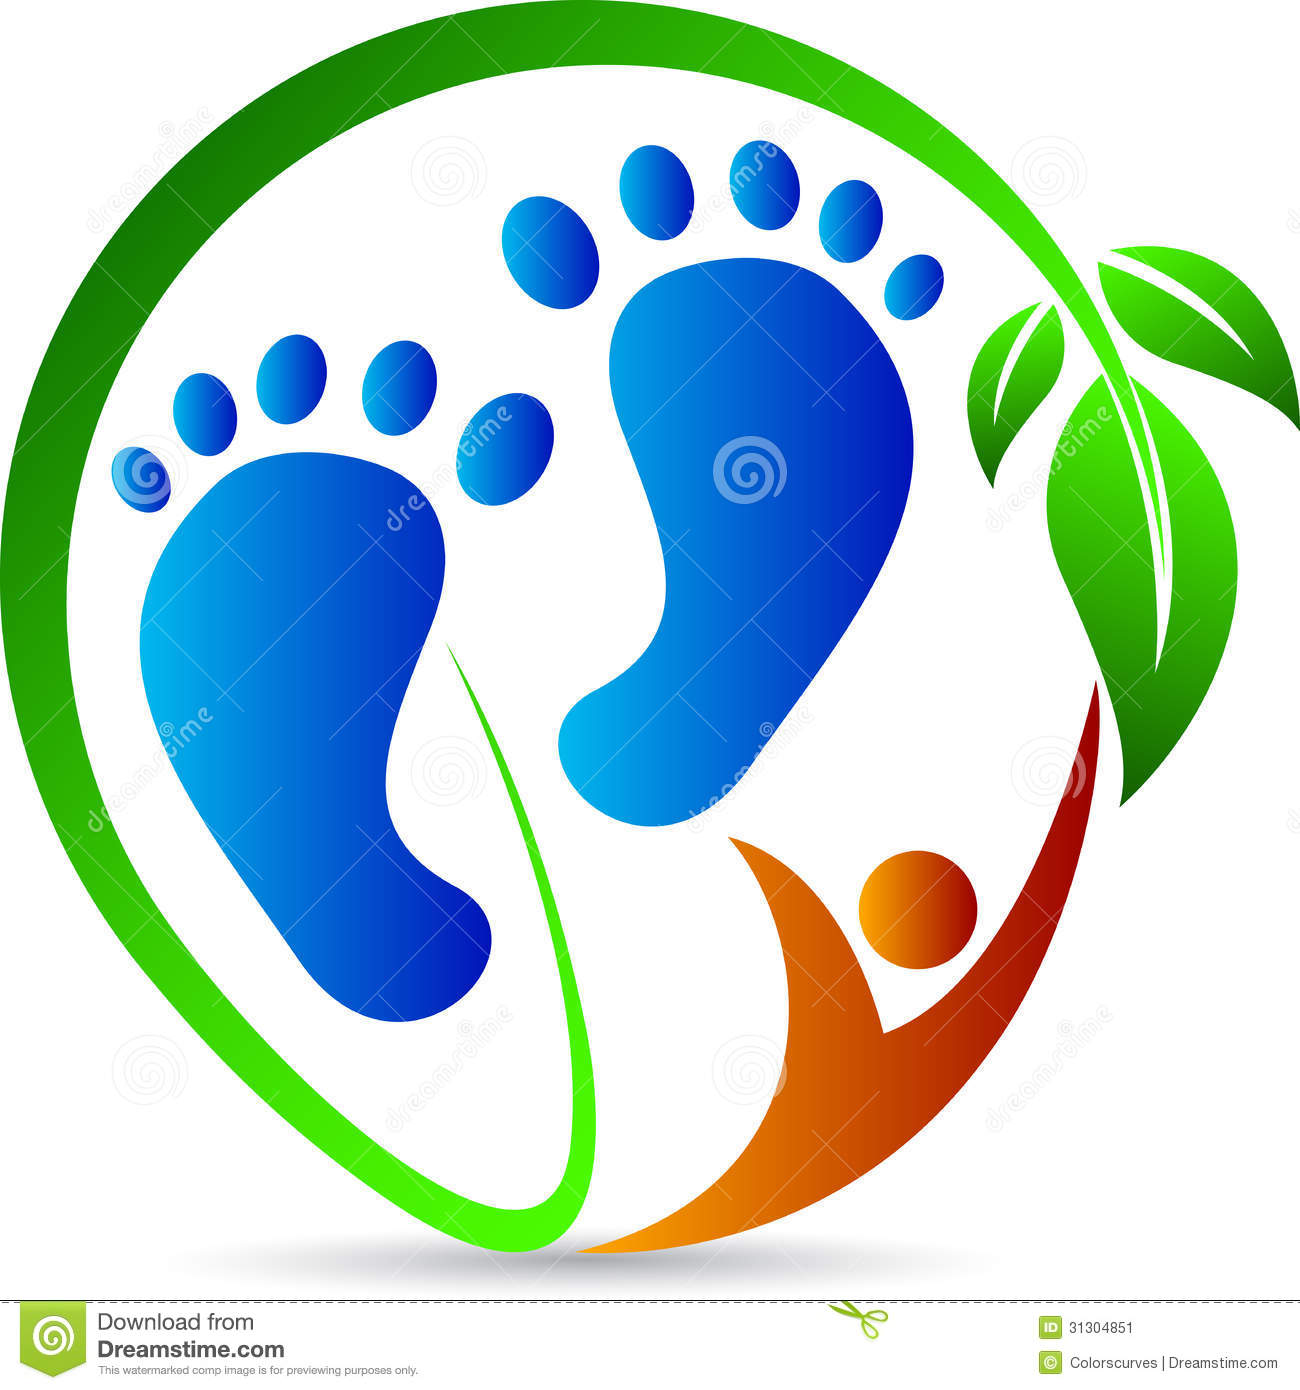 Displaying 12> Images For - Walking Feet Clipart...